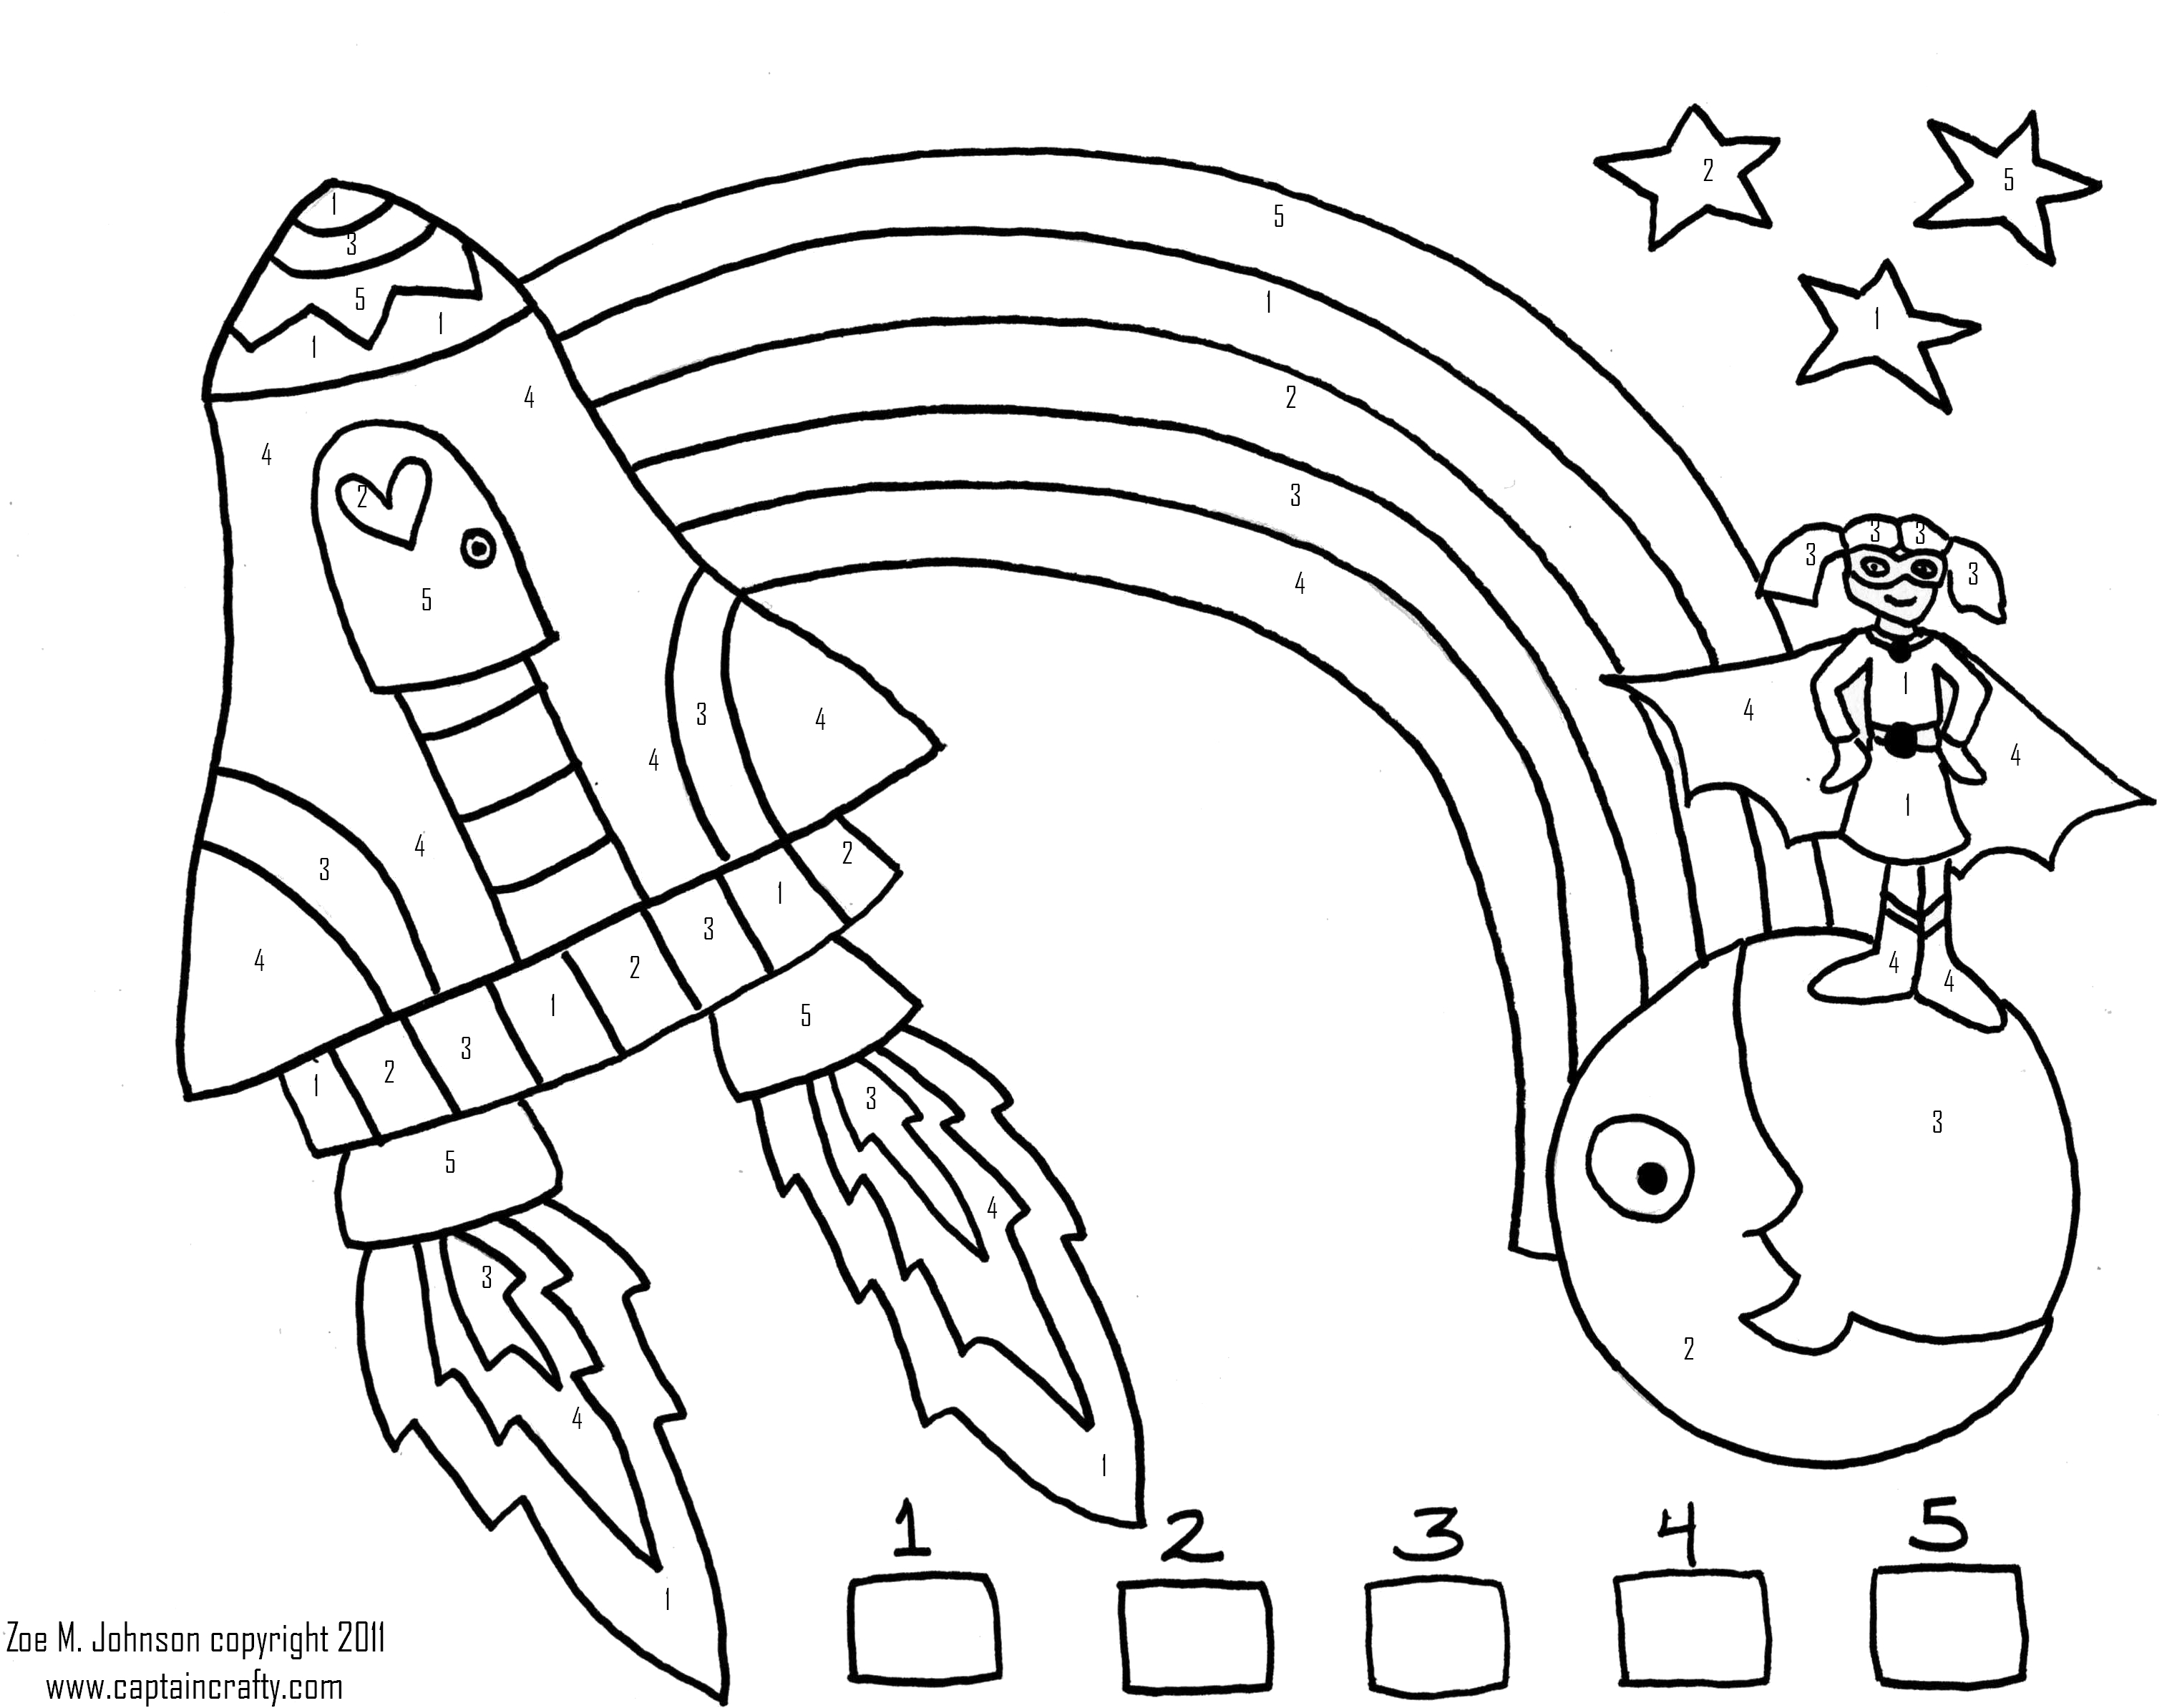 3021x2387 kids space girl color number sheet the handmade adventures